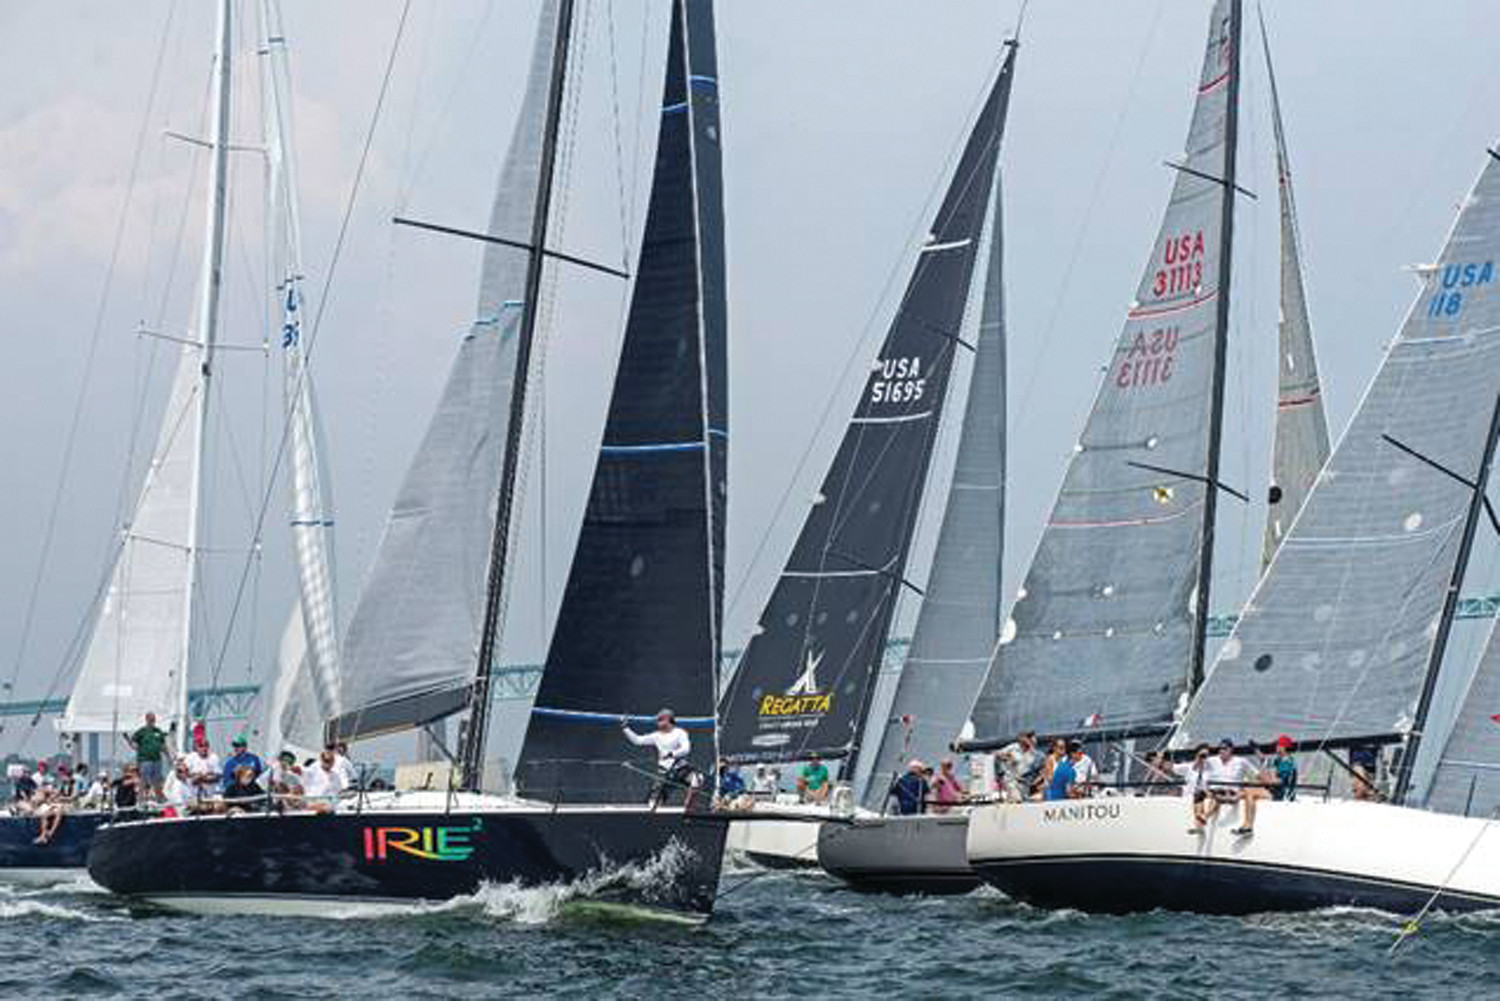 ALL ABOARD: Twenty seven boats from PHRF A and B started on the same line at the 2018 Ida Lewis Distance Race. Irie 2 was squeezed out but won PHRF A and PHRF overall.